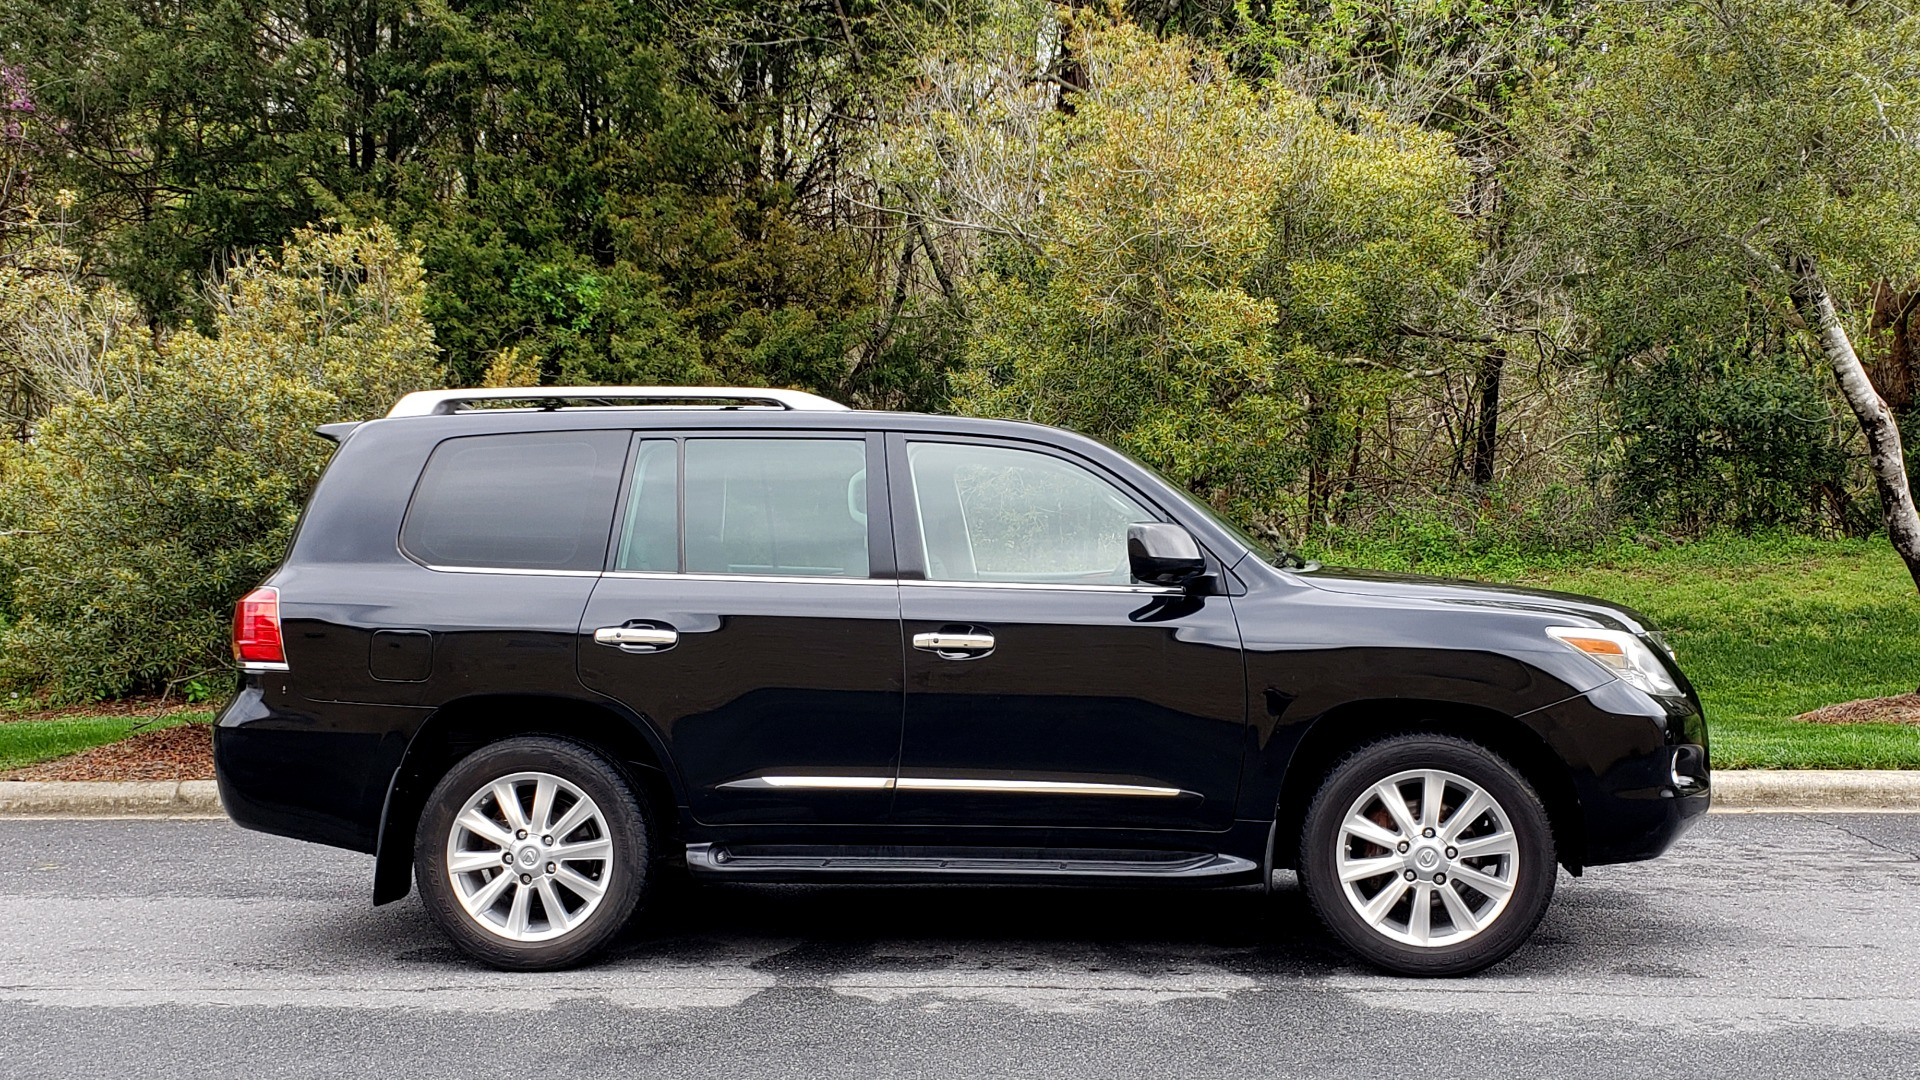 Used 2008 Lexus LX 570 4WD / TECH PKG / NAV / SUNROOF / MARK LEVINSON / PARK ASST for sale $22,995 at Formula Imports in Charlotte NC 28227 5